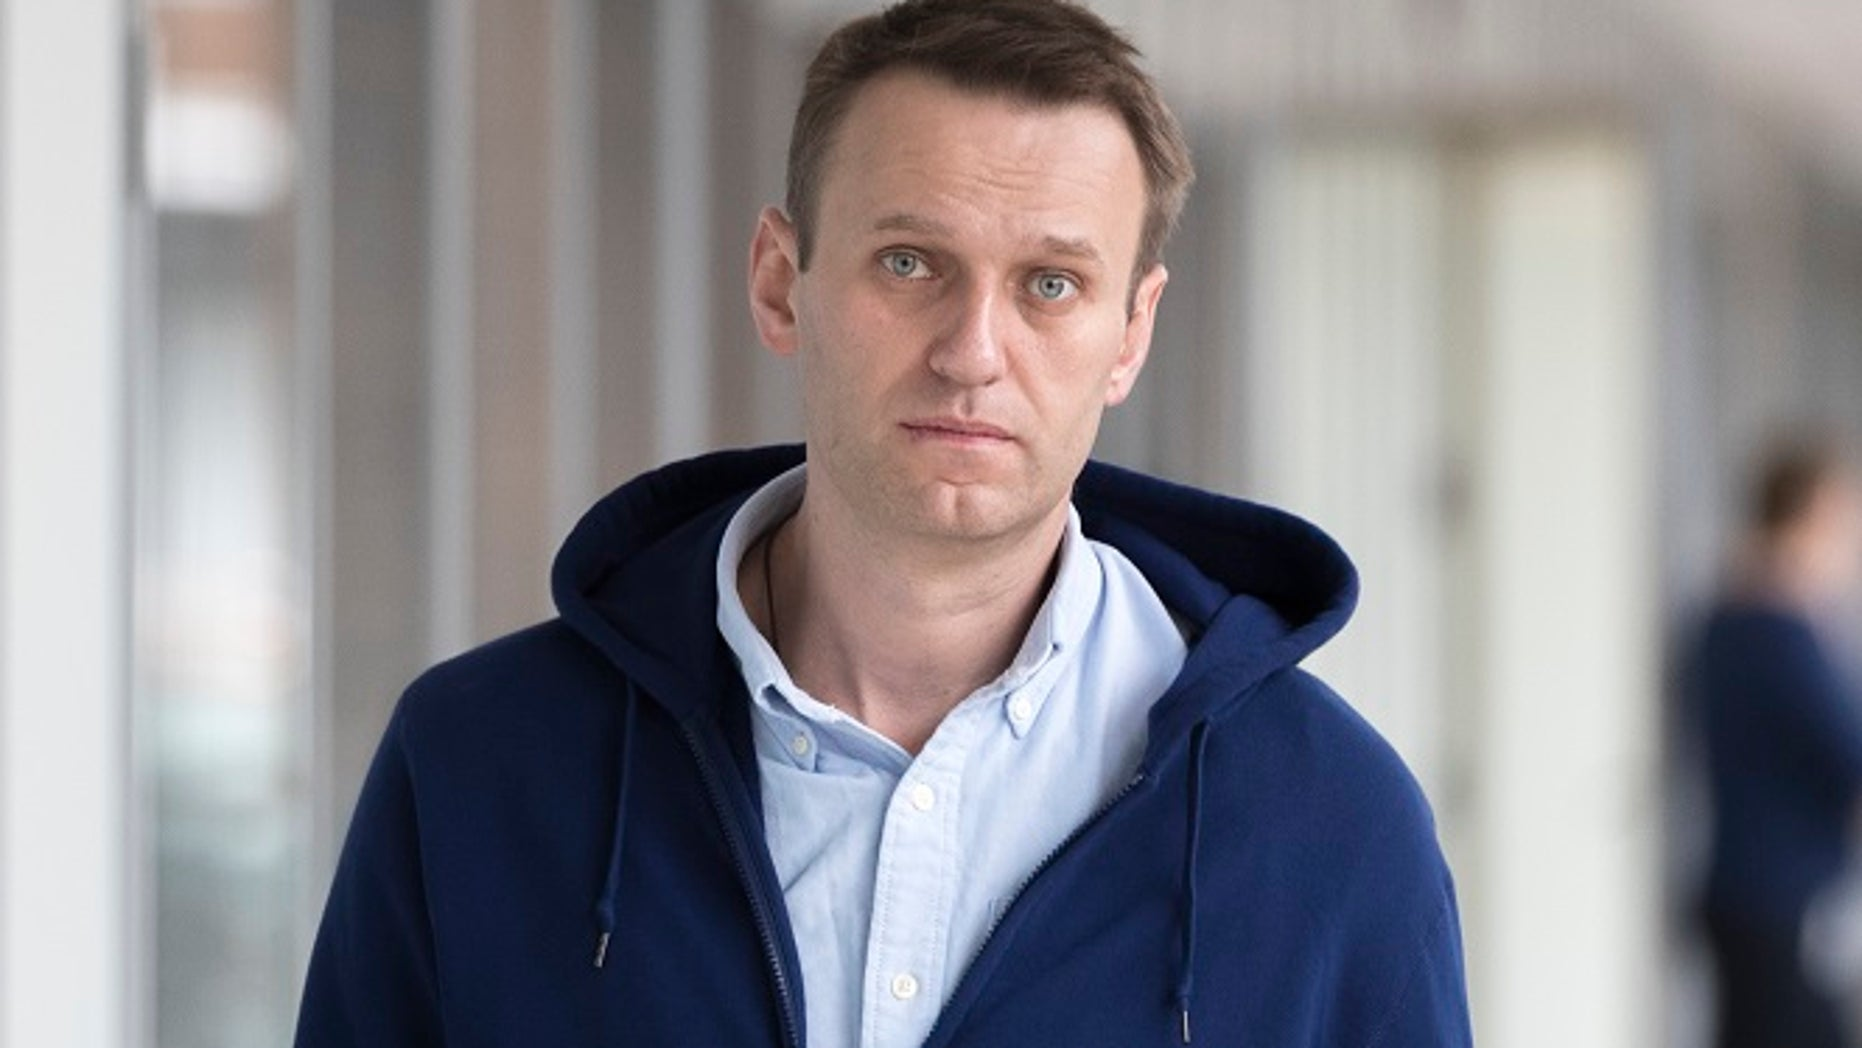 Russian opposition leader Alexei Navalny has been released from jail after serving 25 days for organizing a wave of protests on Friday, July 7, 2017.